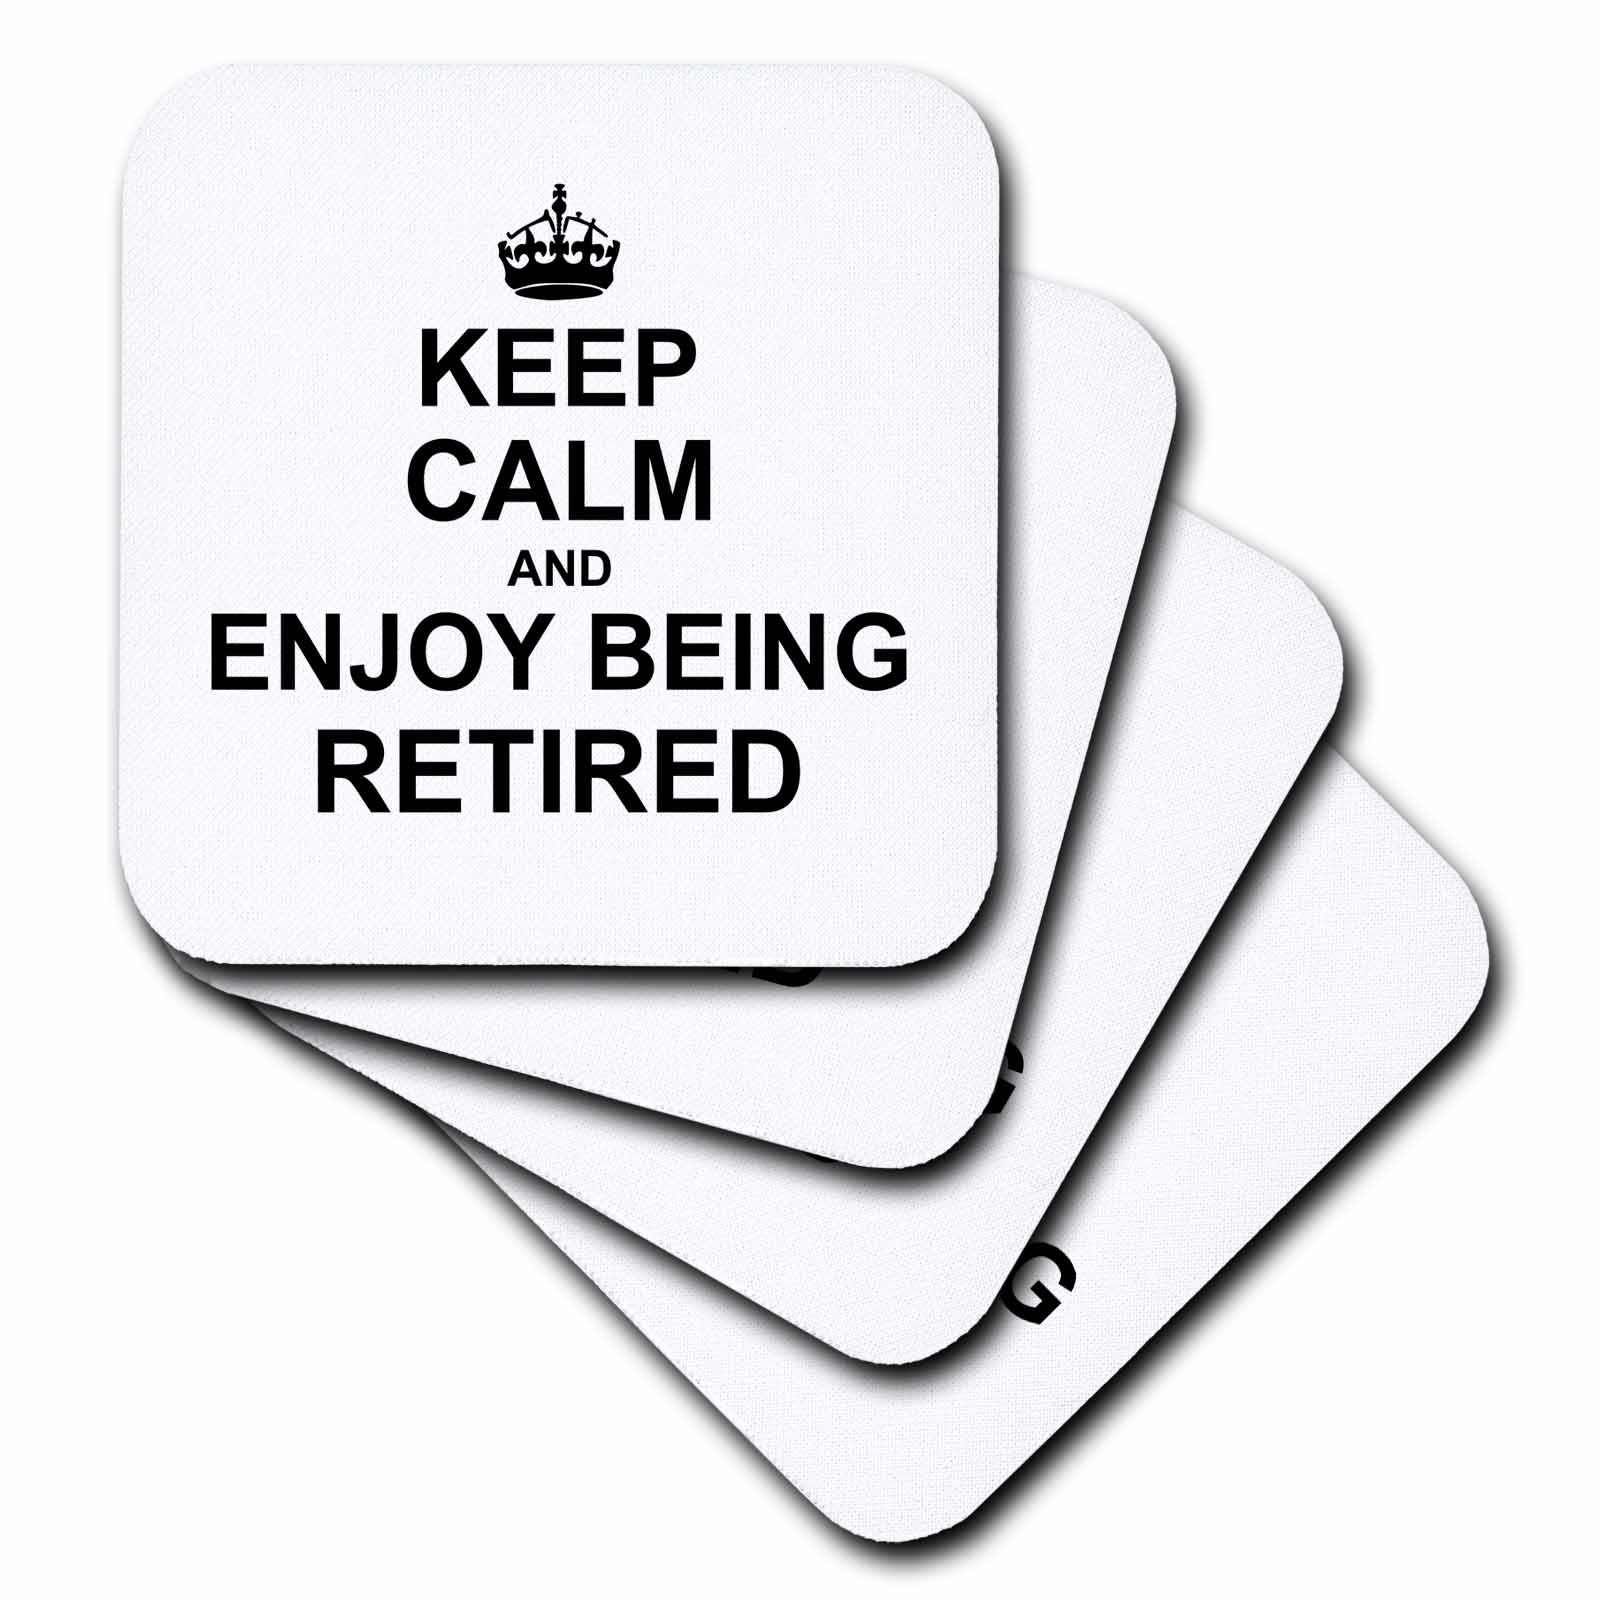 3dRose Keep Calm and Enjoy being Retired. fun carry on themed Retirement gift, Soft Coasters, set of 4